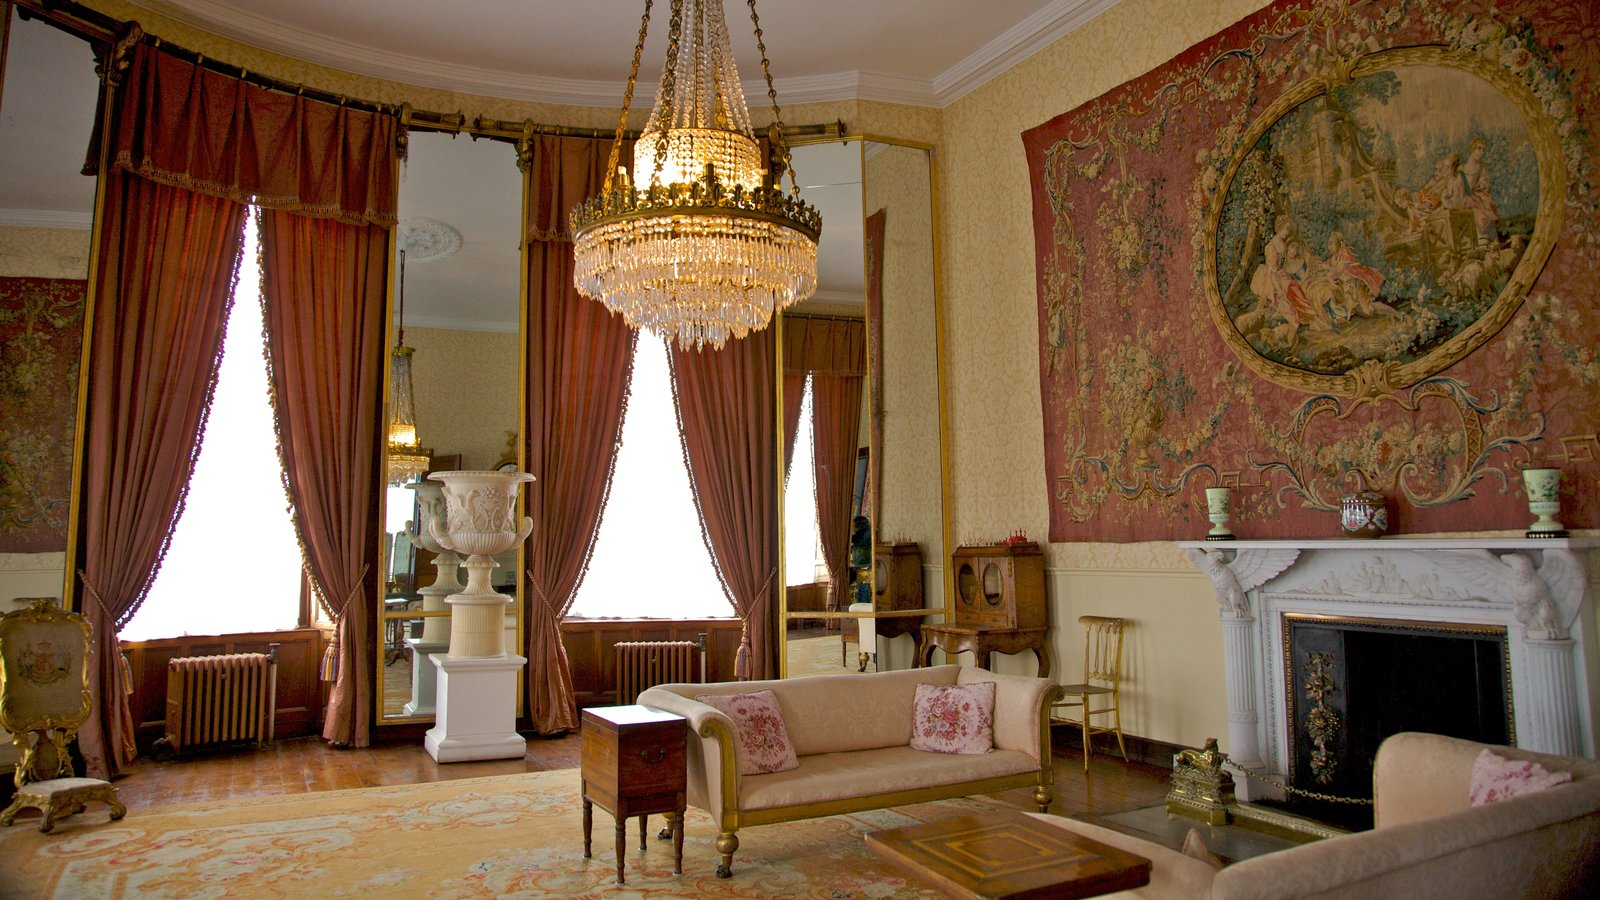 bantry house and garden showing a house interior views and heritage architecture